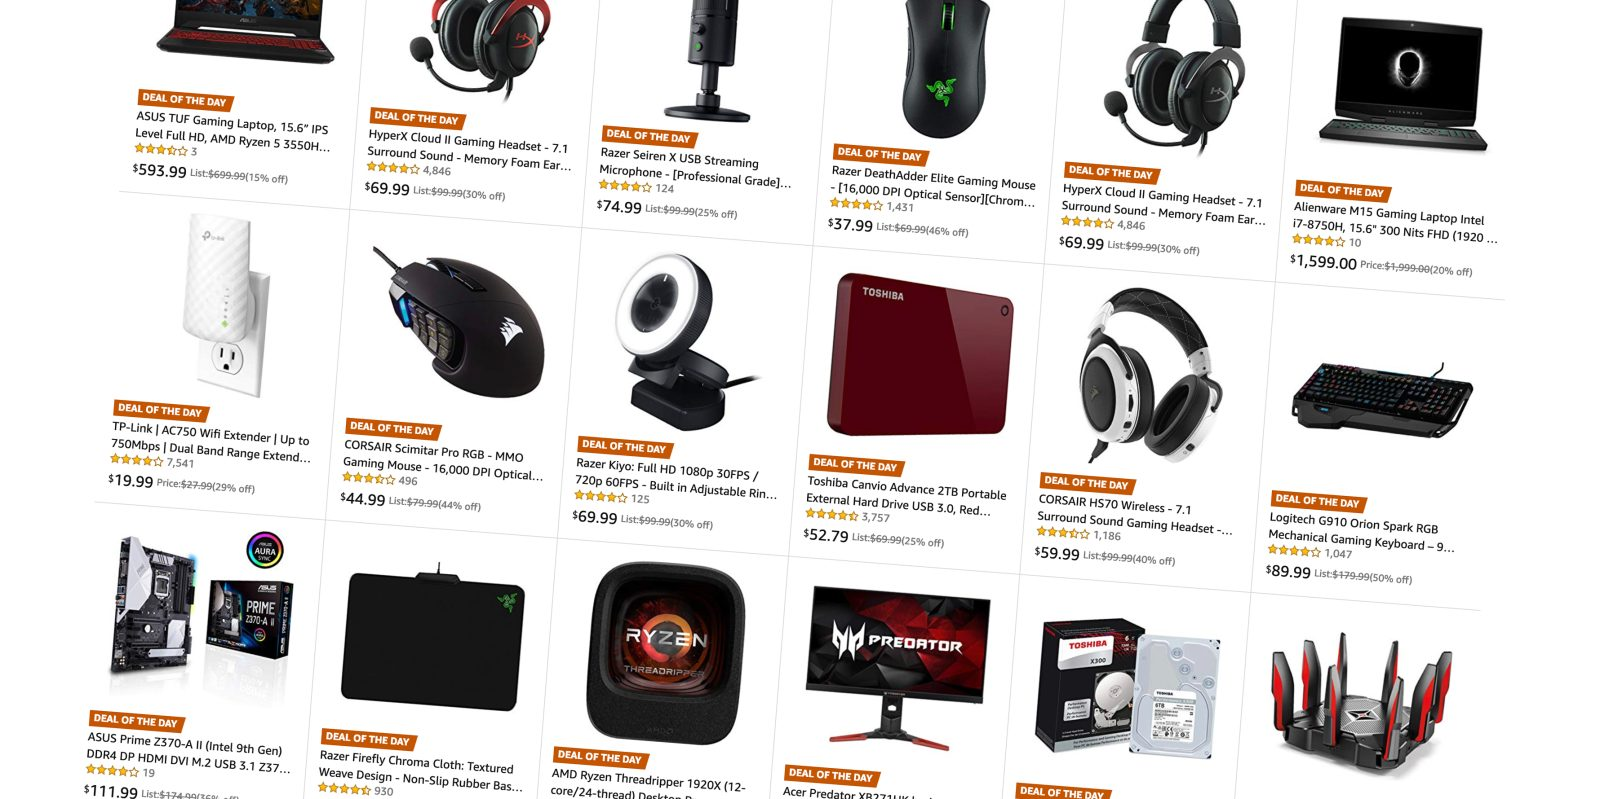 Amazon's Gold Box is loaded w/ Mac + PC gaming accessories: D-Link, Logitech, Razer, much more